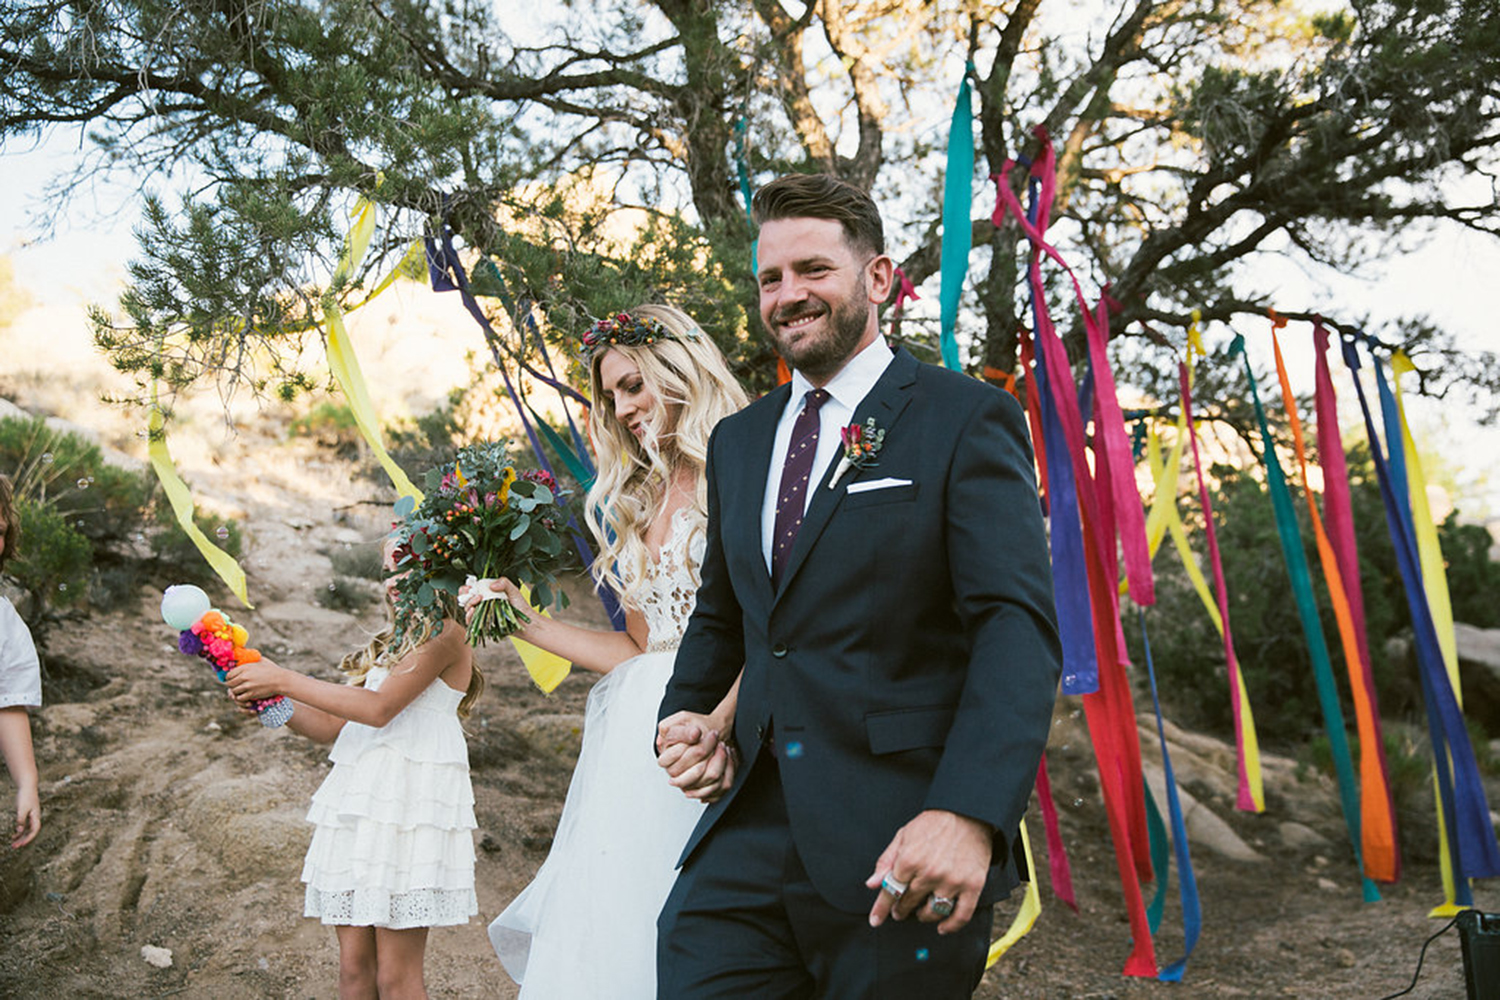 Kaede + Jason // Jbohemian, colorful and eclectic desert weddingoshua Tree Wedding // Stefanie Vinsel Photography // Desert Boho Wedding Festival // Lucky Day Events Co. // Desert Wedding